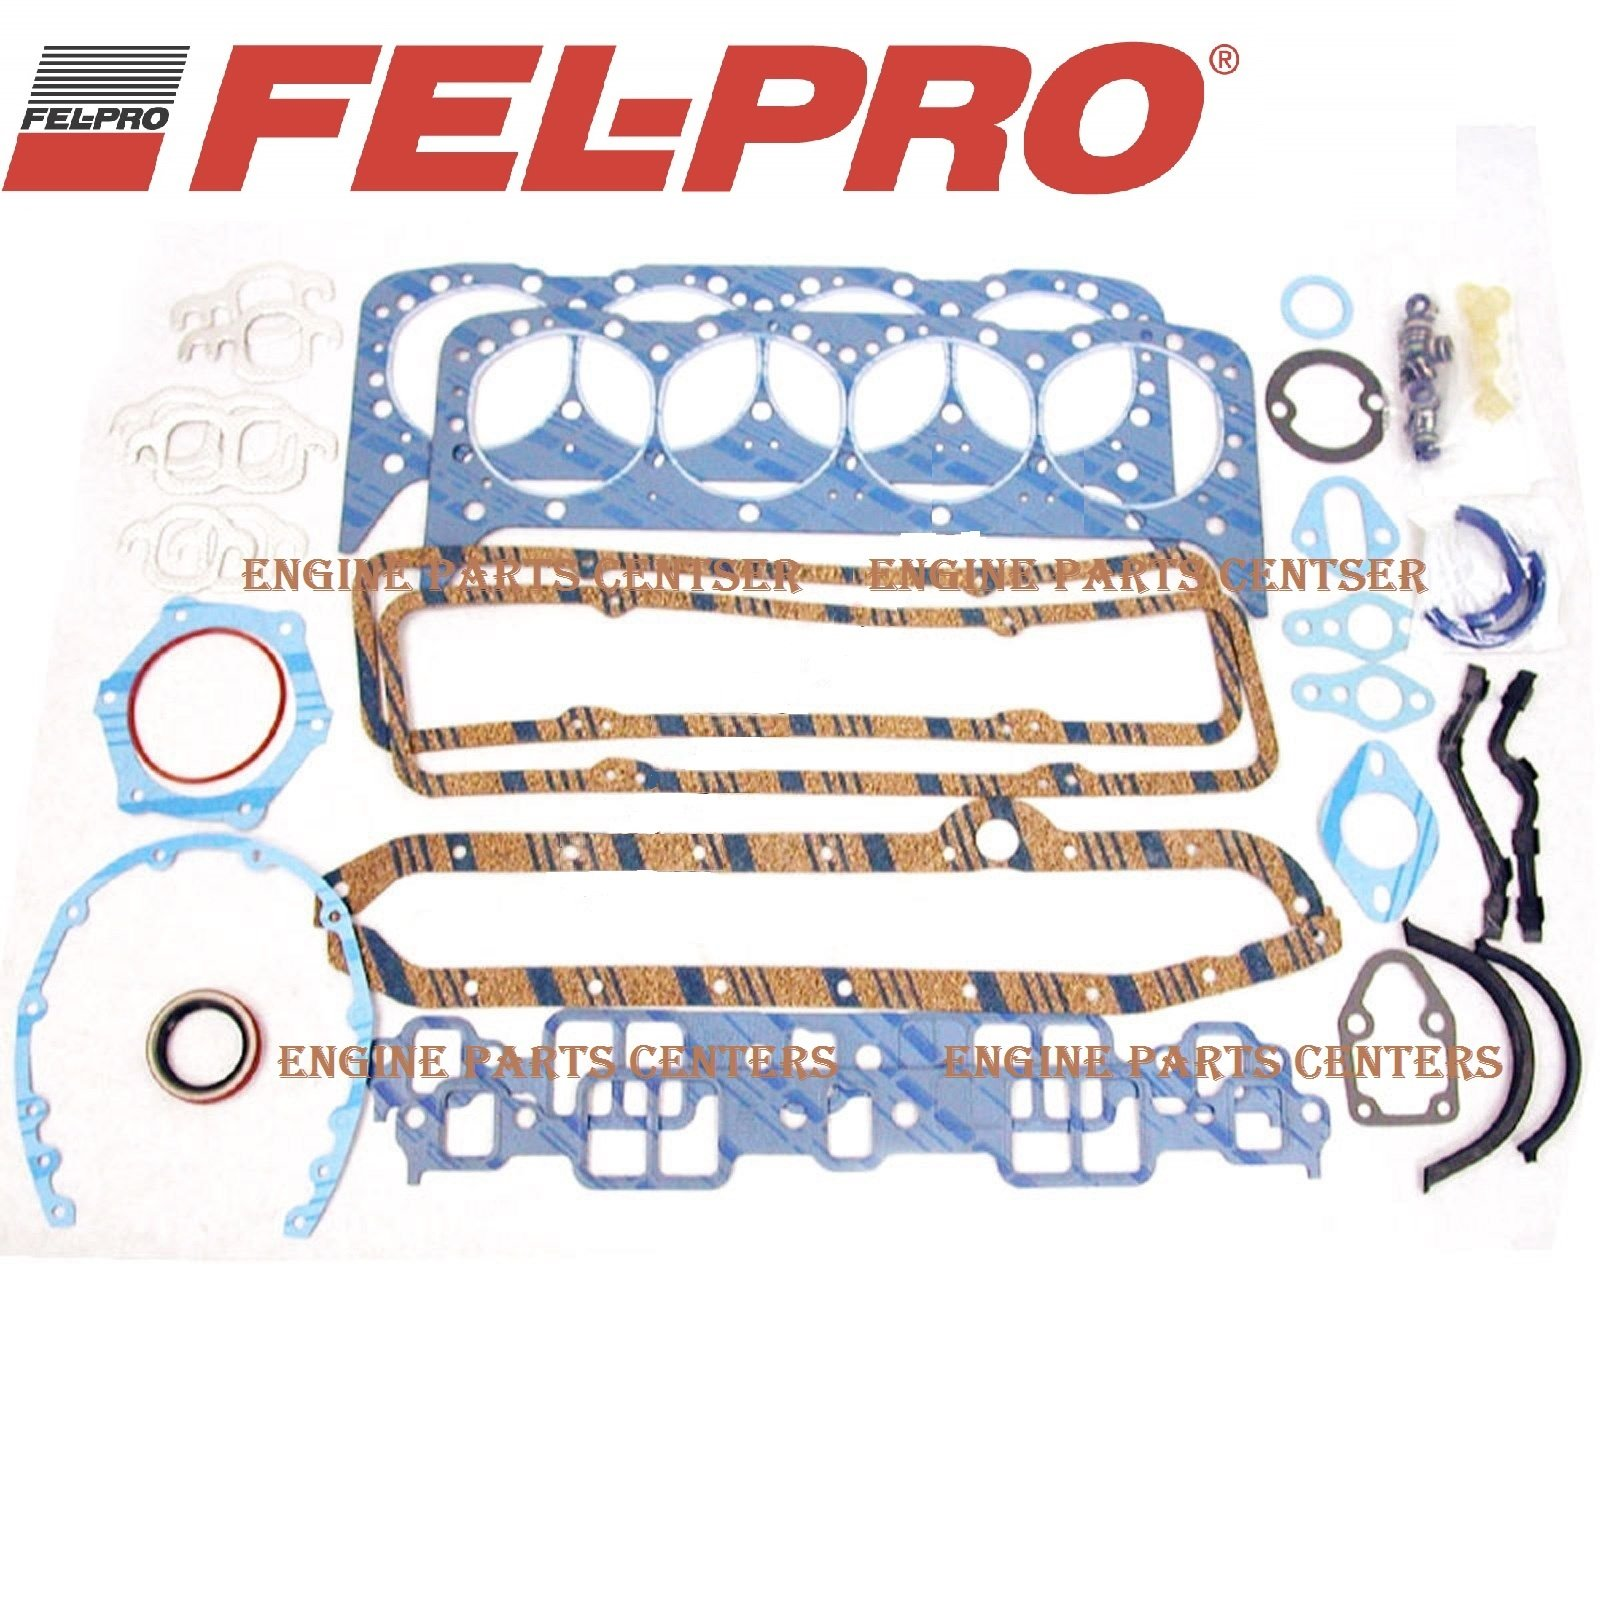 Fel Pro Gasket Set Chevy 350 1980-85 sb sbc Full Overhaul Complete 260-1045 (Full Set) by Falcon Performance